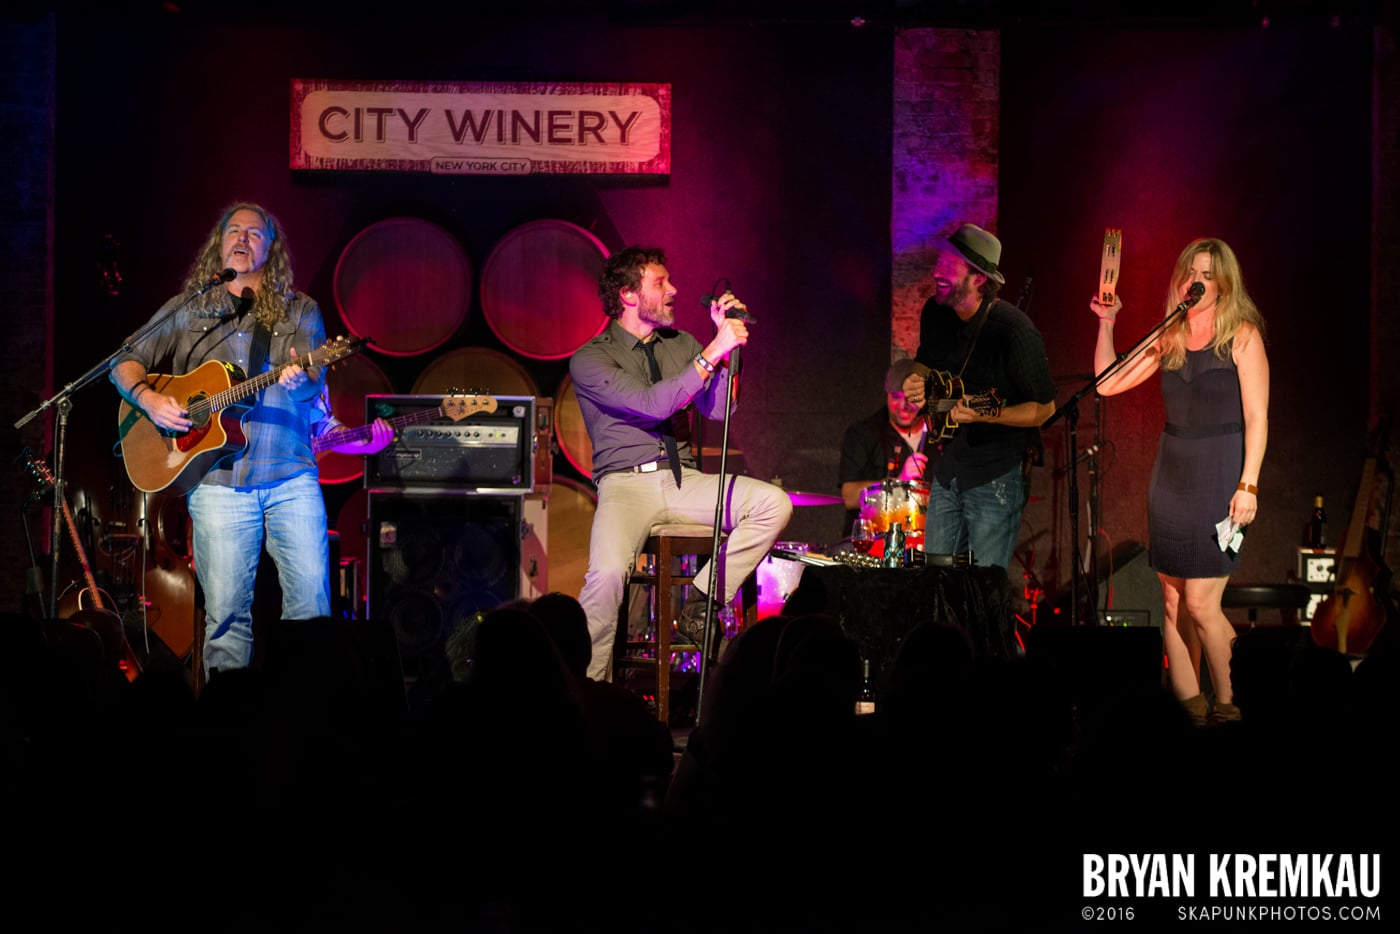 Carbon Leaf @ City Winery, NYC - July 11th 2013 - Bryan Kremkau (7)